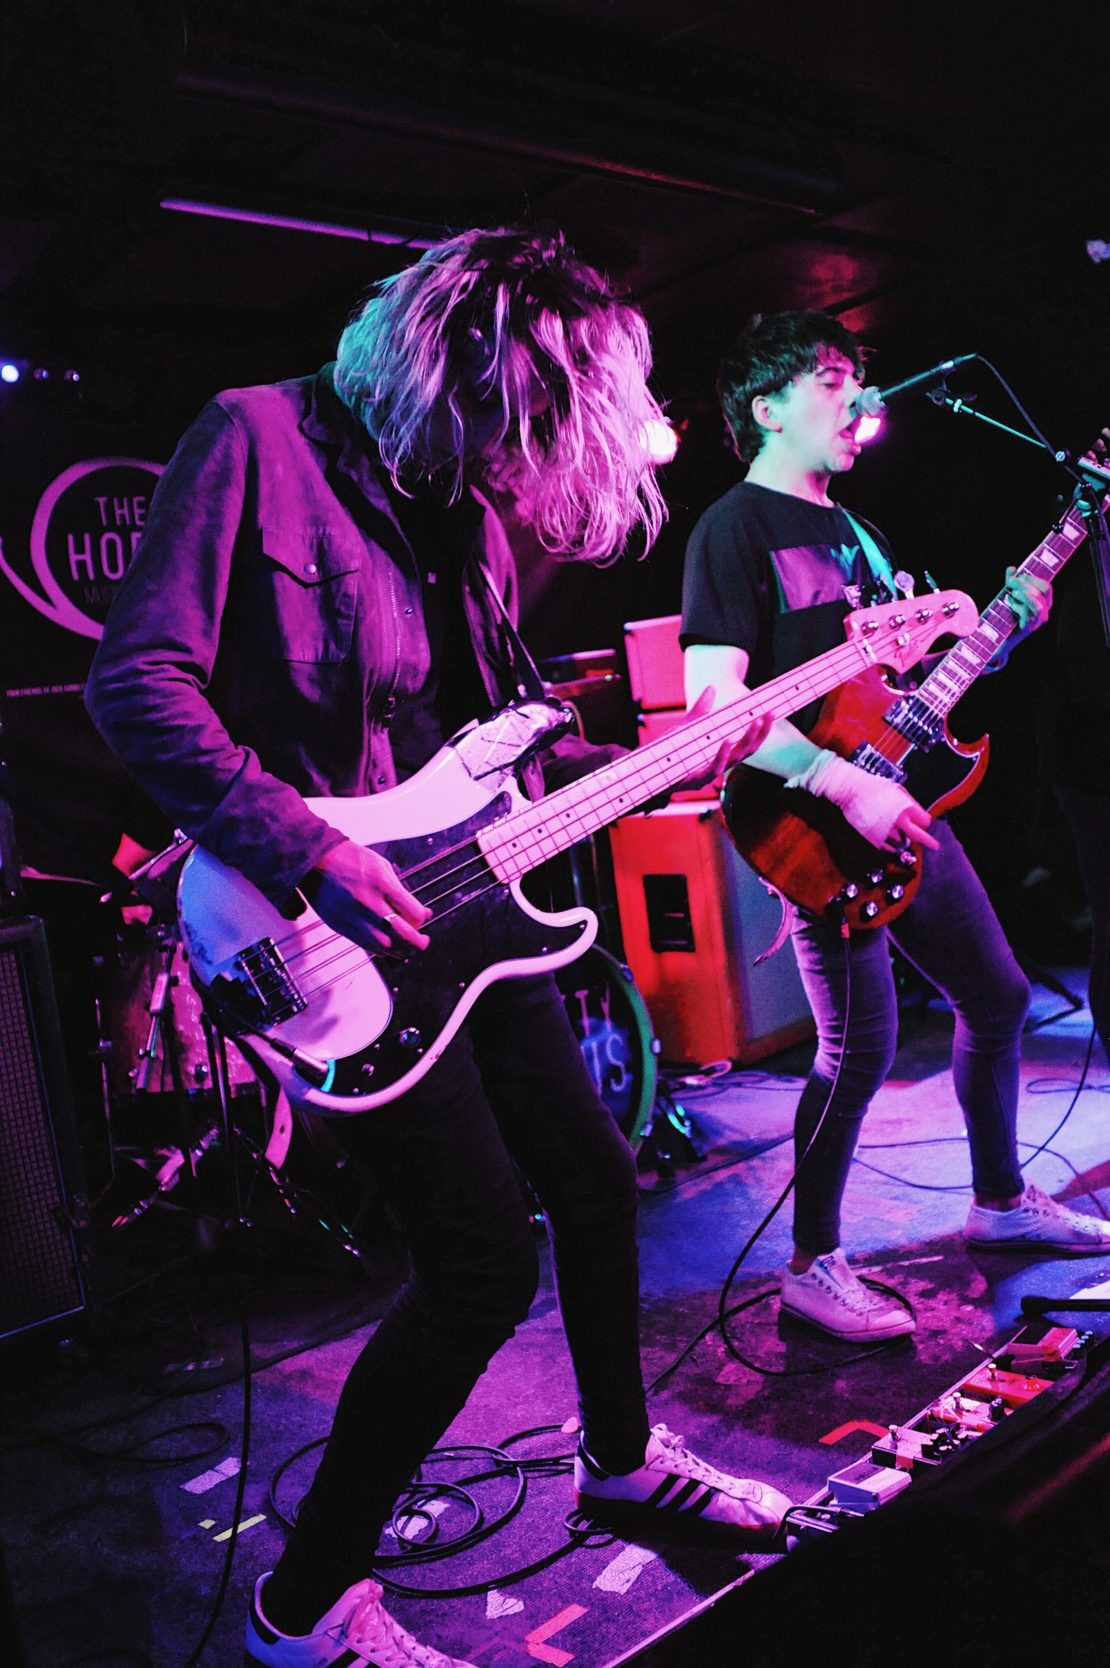 Photos: Pretty Vicious play Reading and Leeds Warm-up